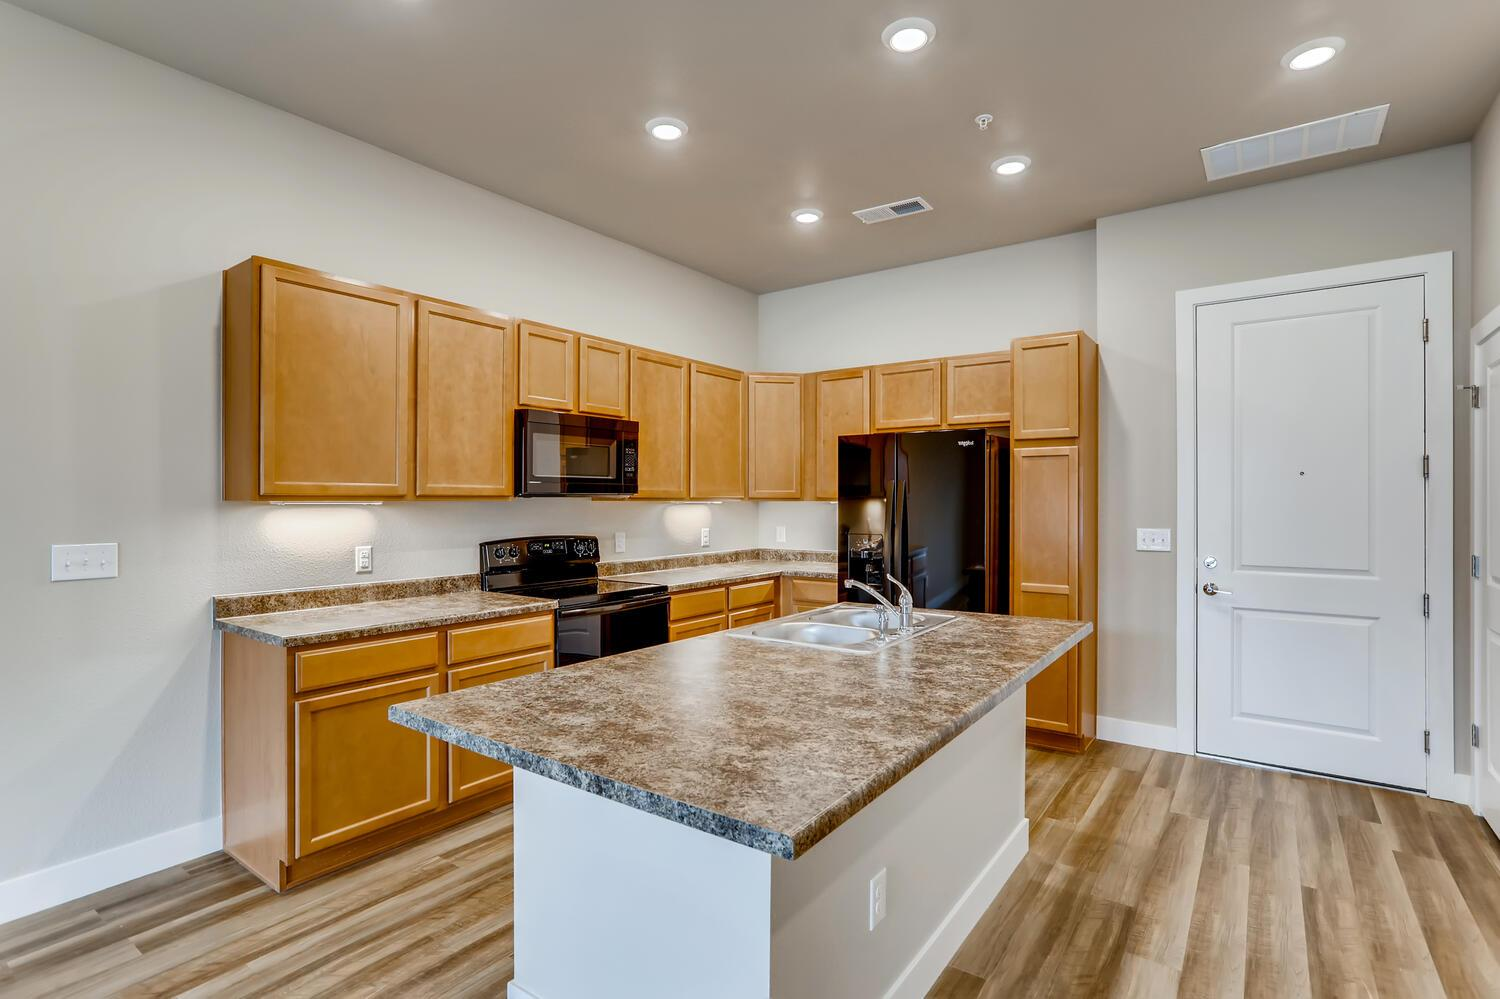 Kitchen featured in the Residence 1A By Century Communities in Denver, CO